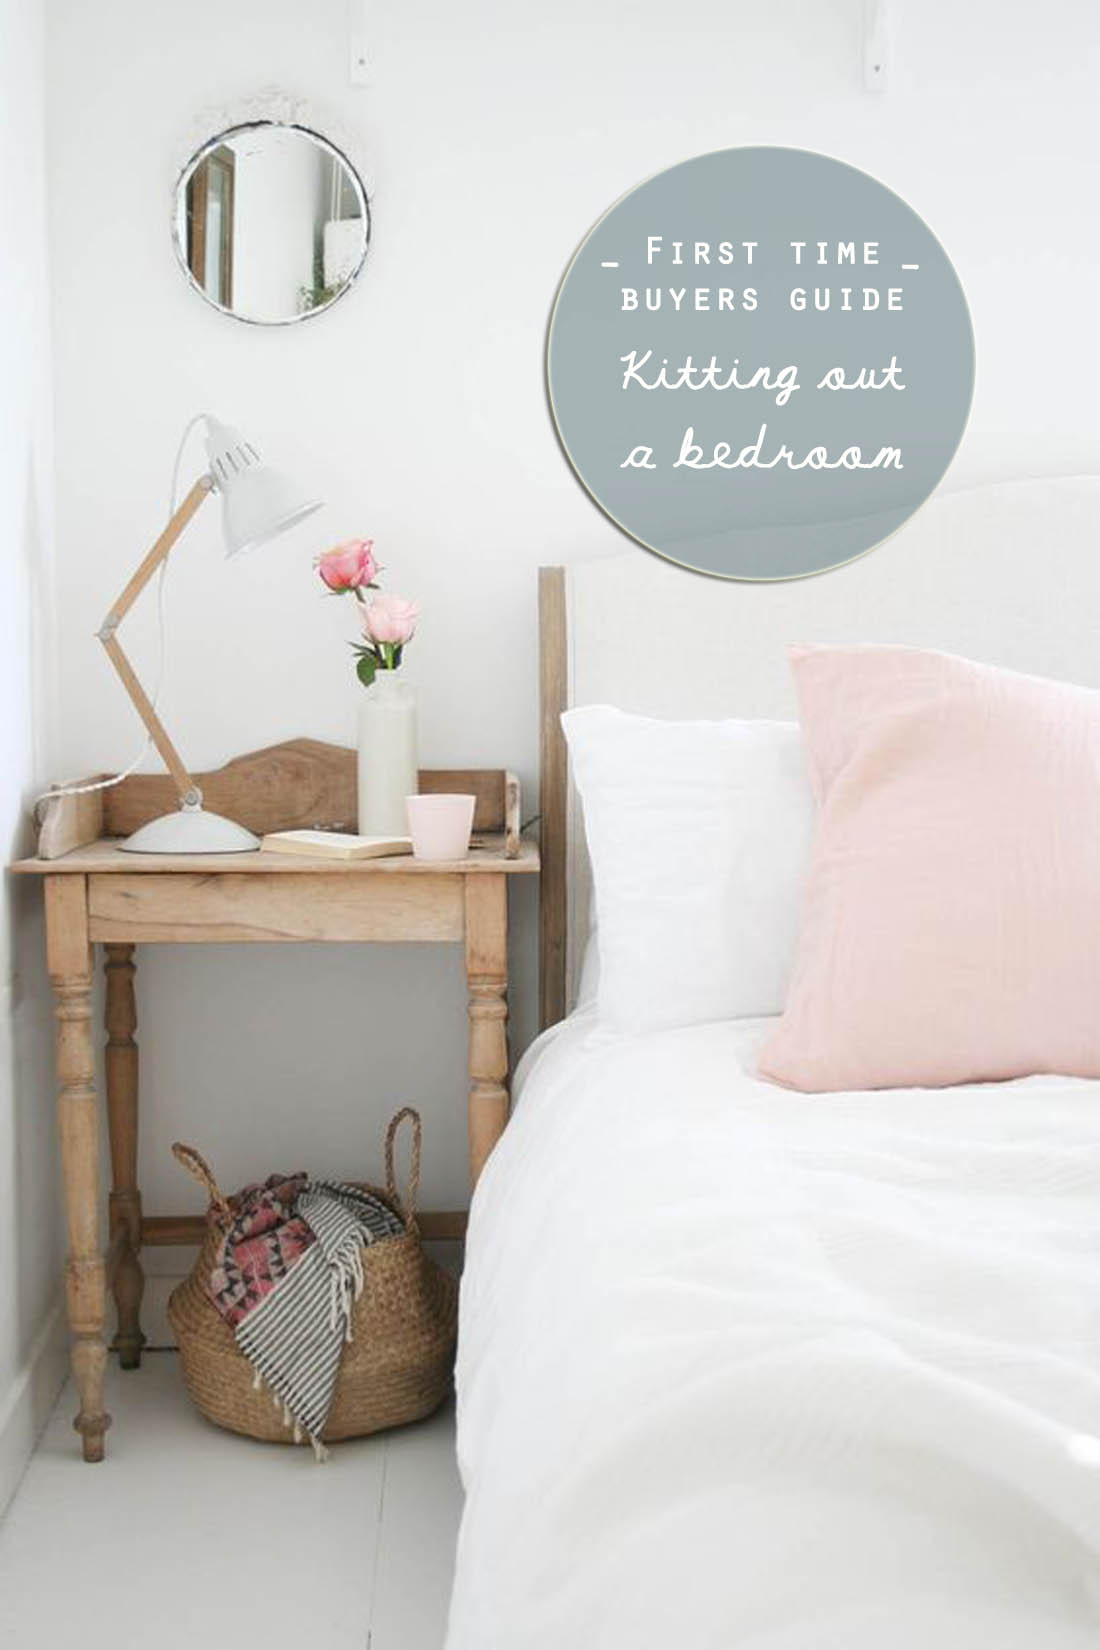 First time buyer's guide to kitting out a bedroom | Apartment Apothecary